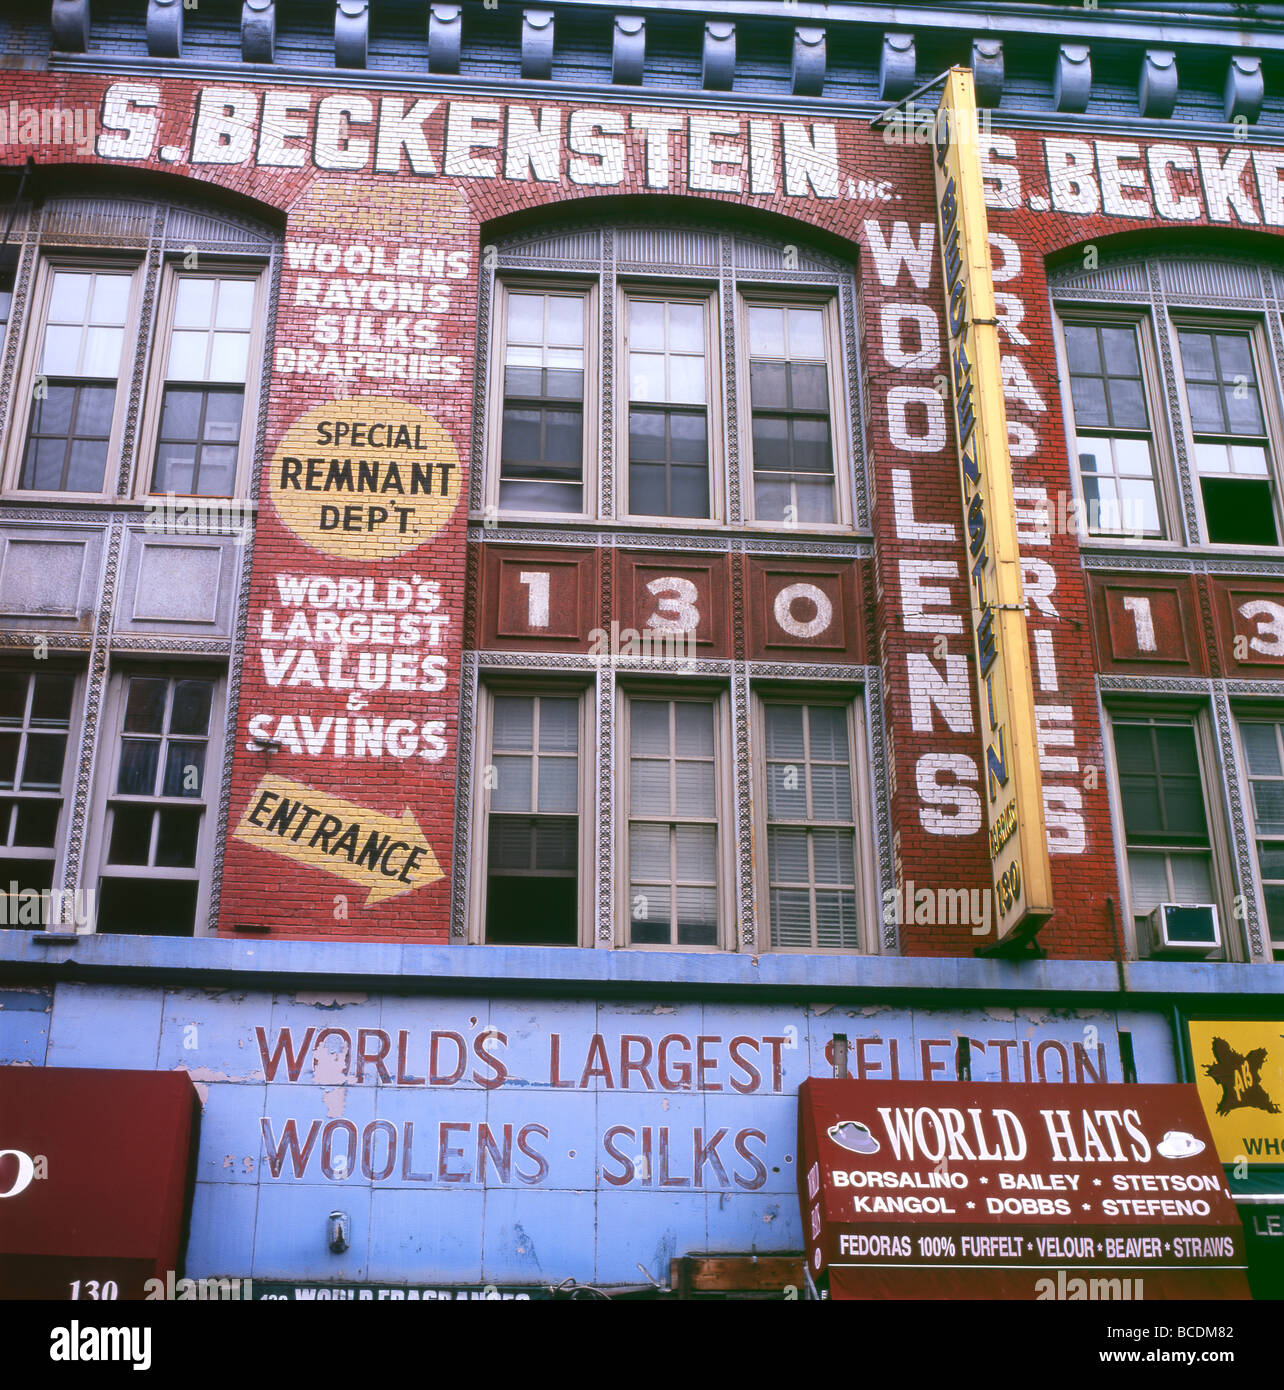 S. Beckenstein warehouse building on Orchard St. Lower East Side, New York city a property now converted into lofts - Stock Image